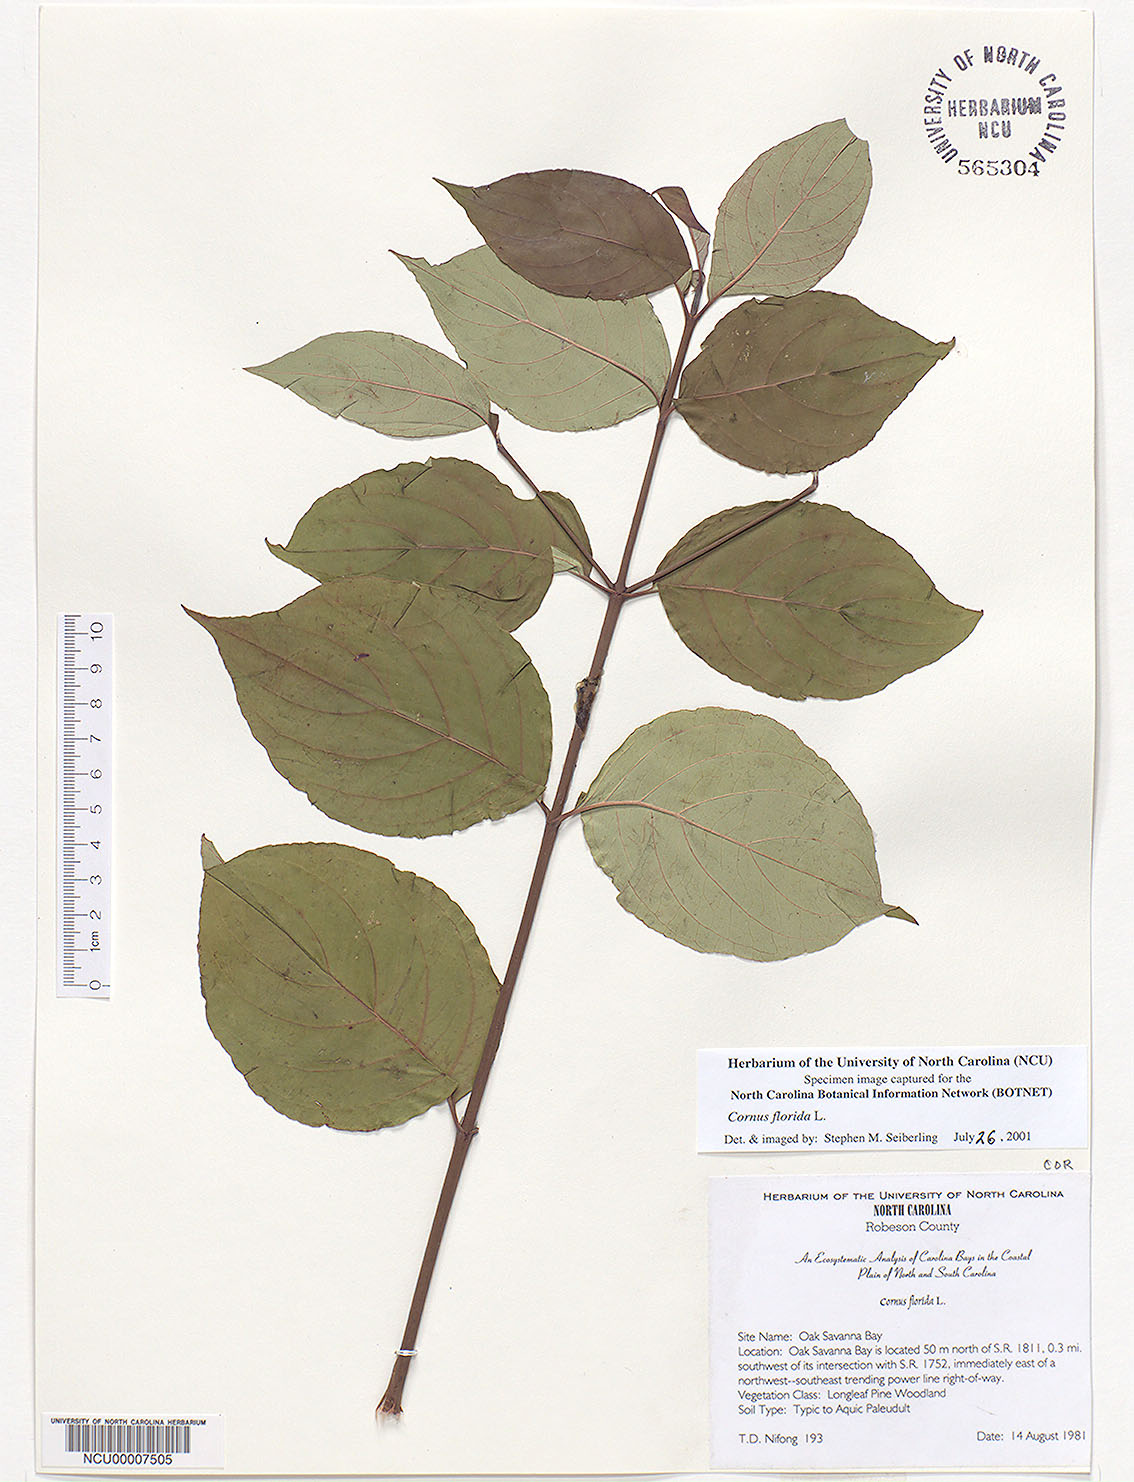 Common Trees Of The North Carolina Piedmont Cornus Florida L